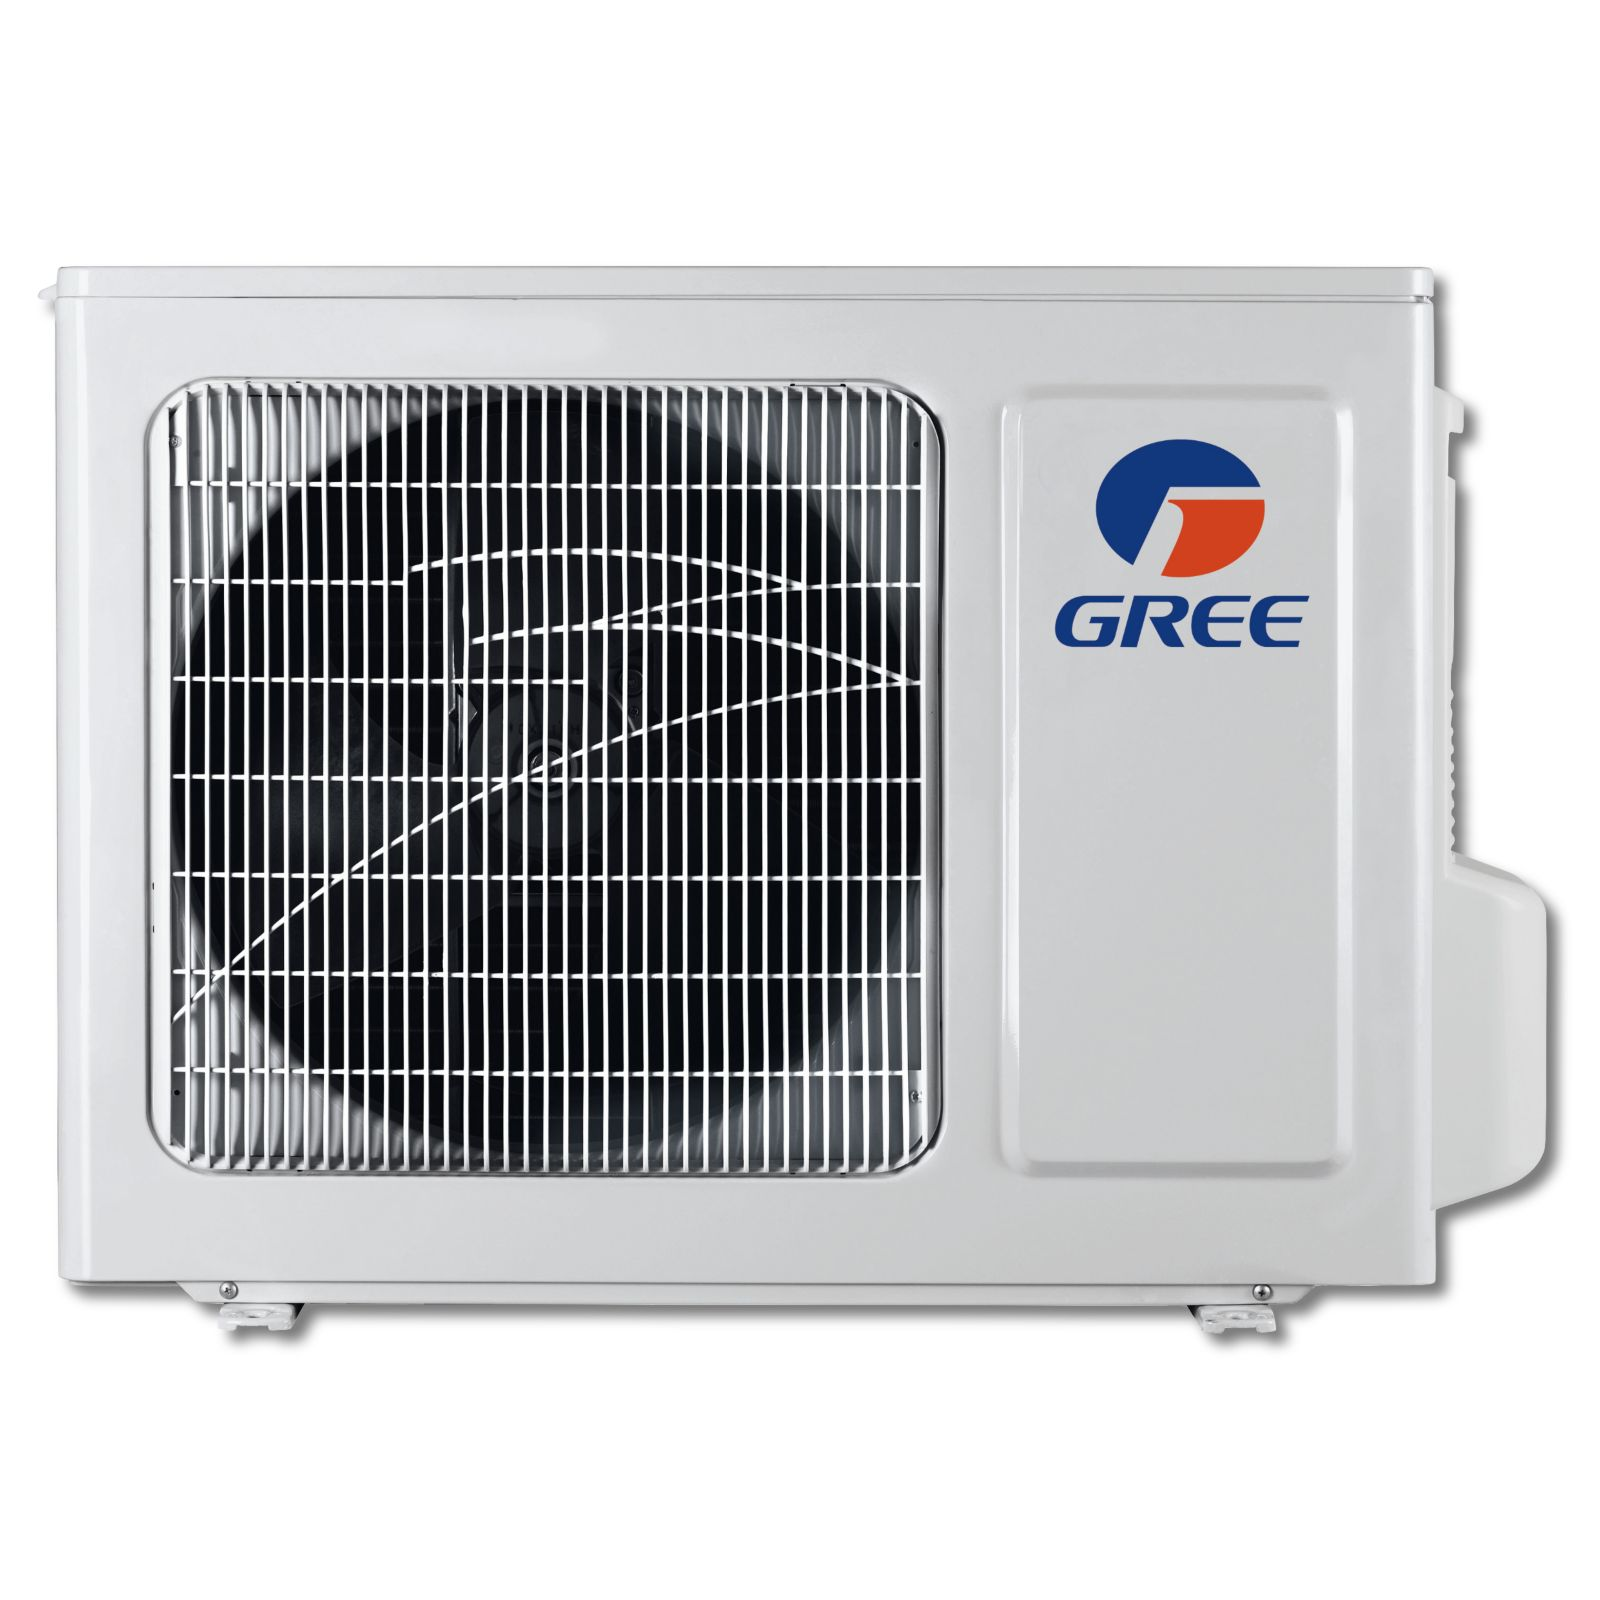 GREE VIR09HP115V1AO - Vireo 9,000 BTU Wall Mounted Inverter Heat Pump Outdoor Unit 115V